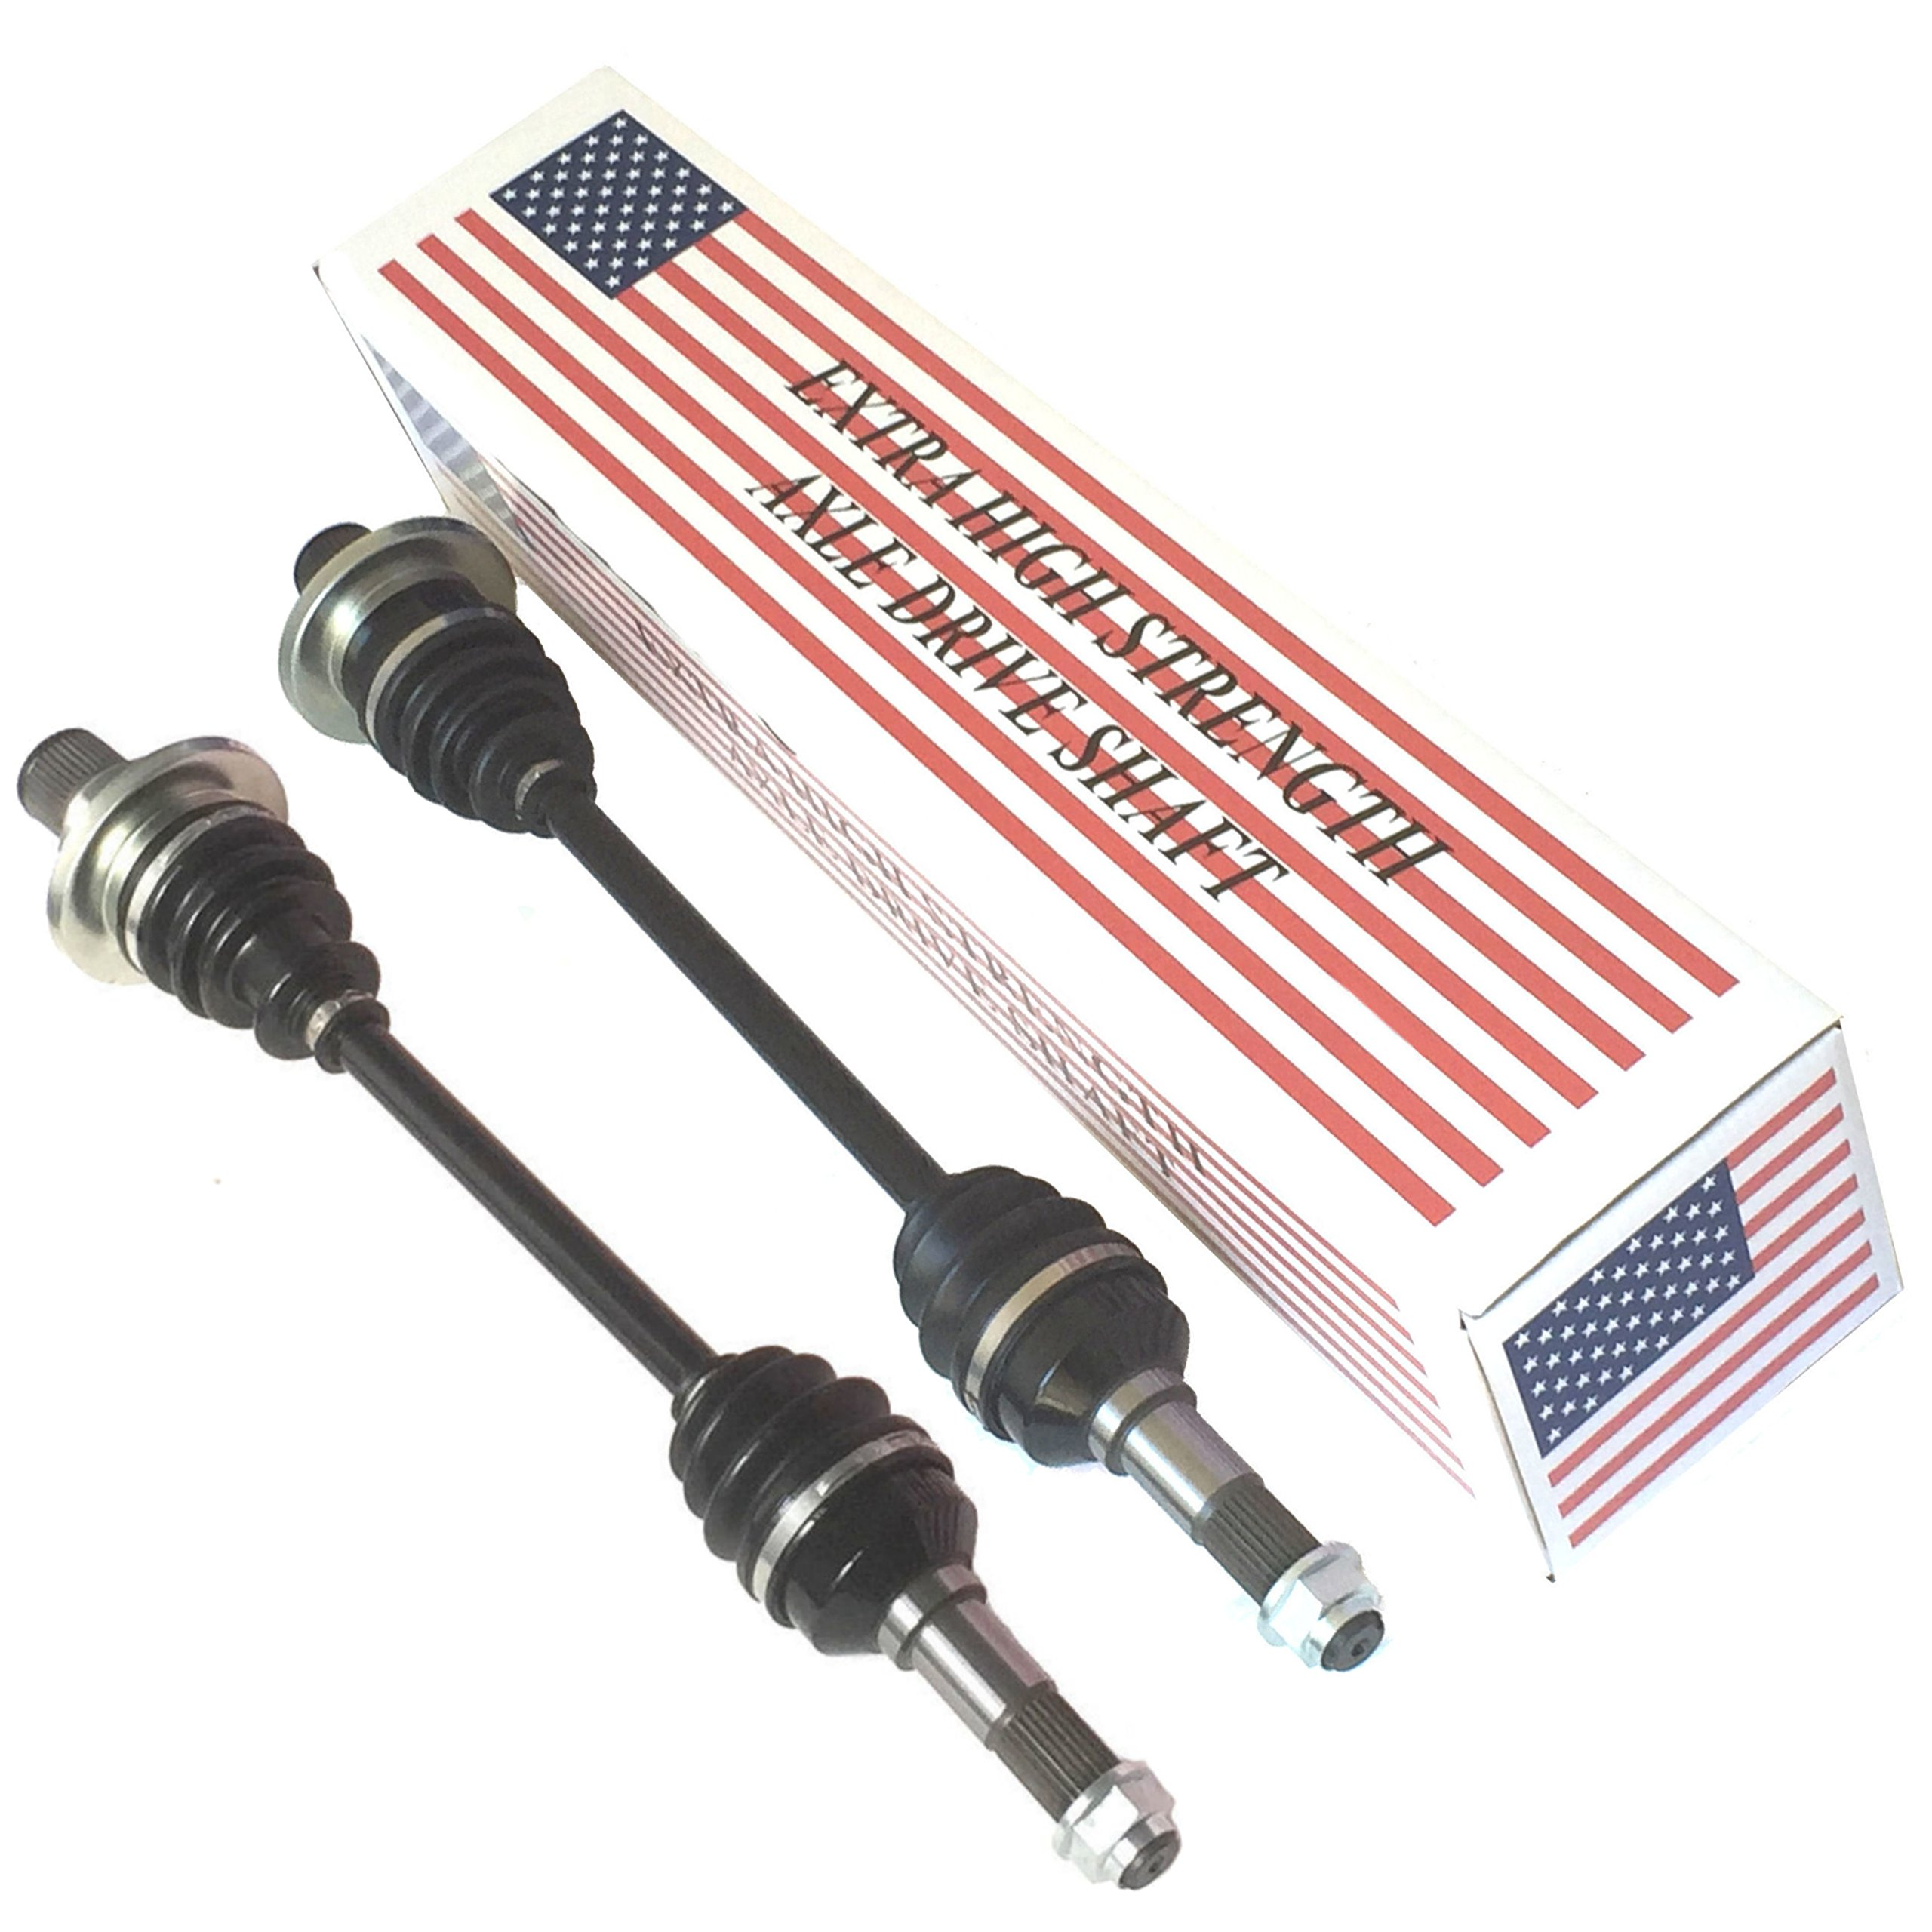 ECCPP CV Axle Rear Right for 2006-2009 Yamaha Rhino 450 2006 2007 Yamaha Rhino 660